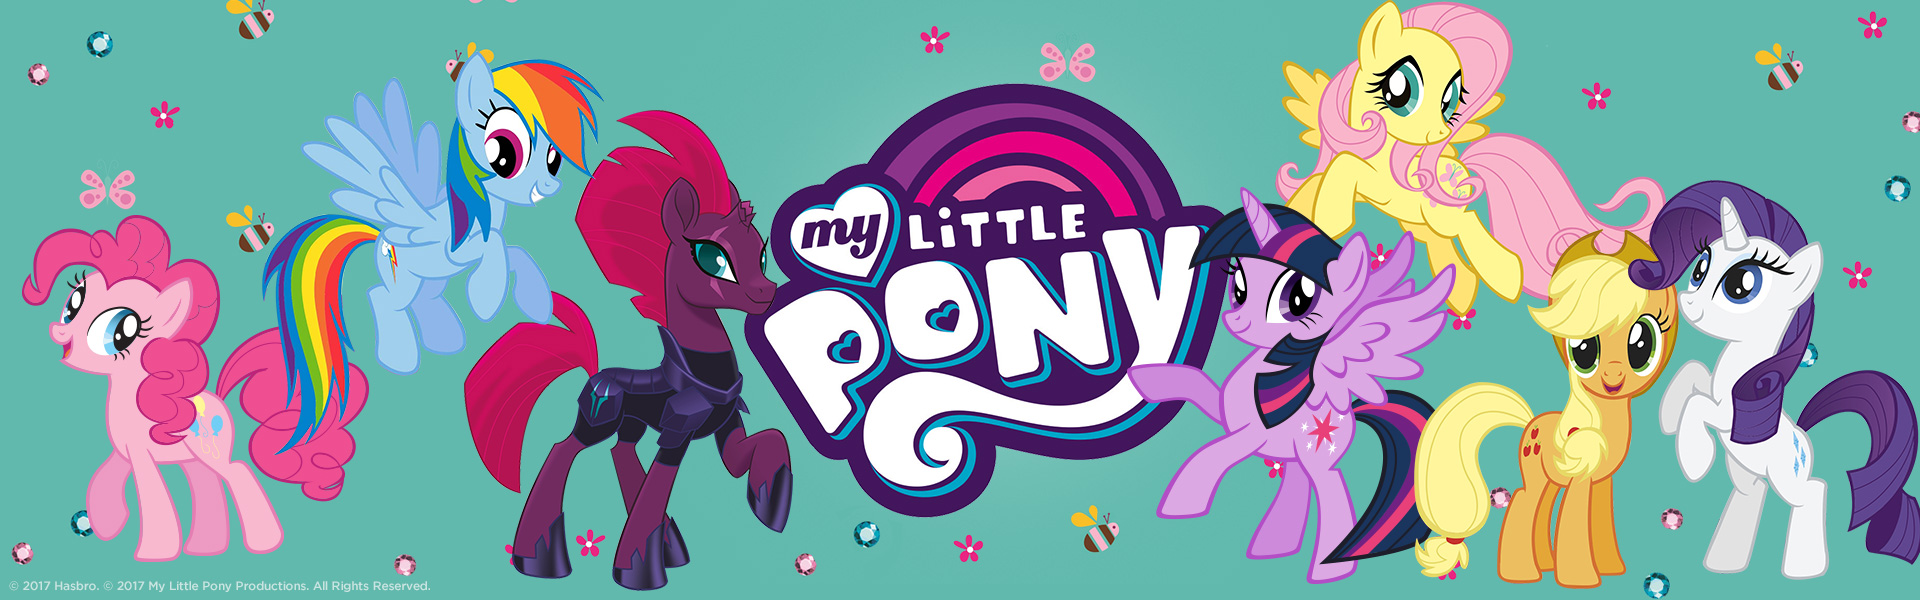 My Little Pony: Meet Tempest Shadow and the Mane Six